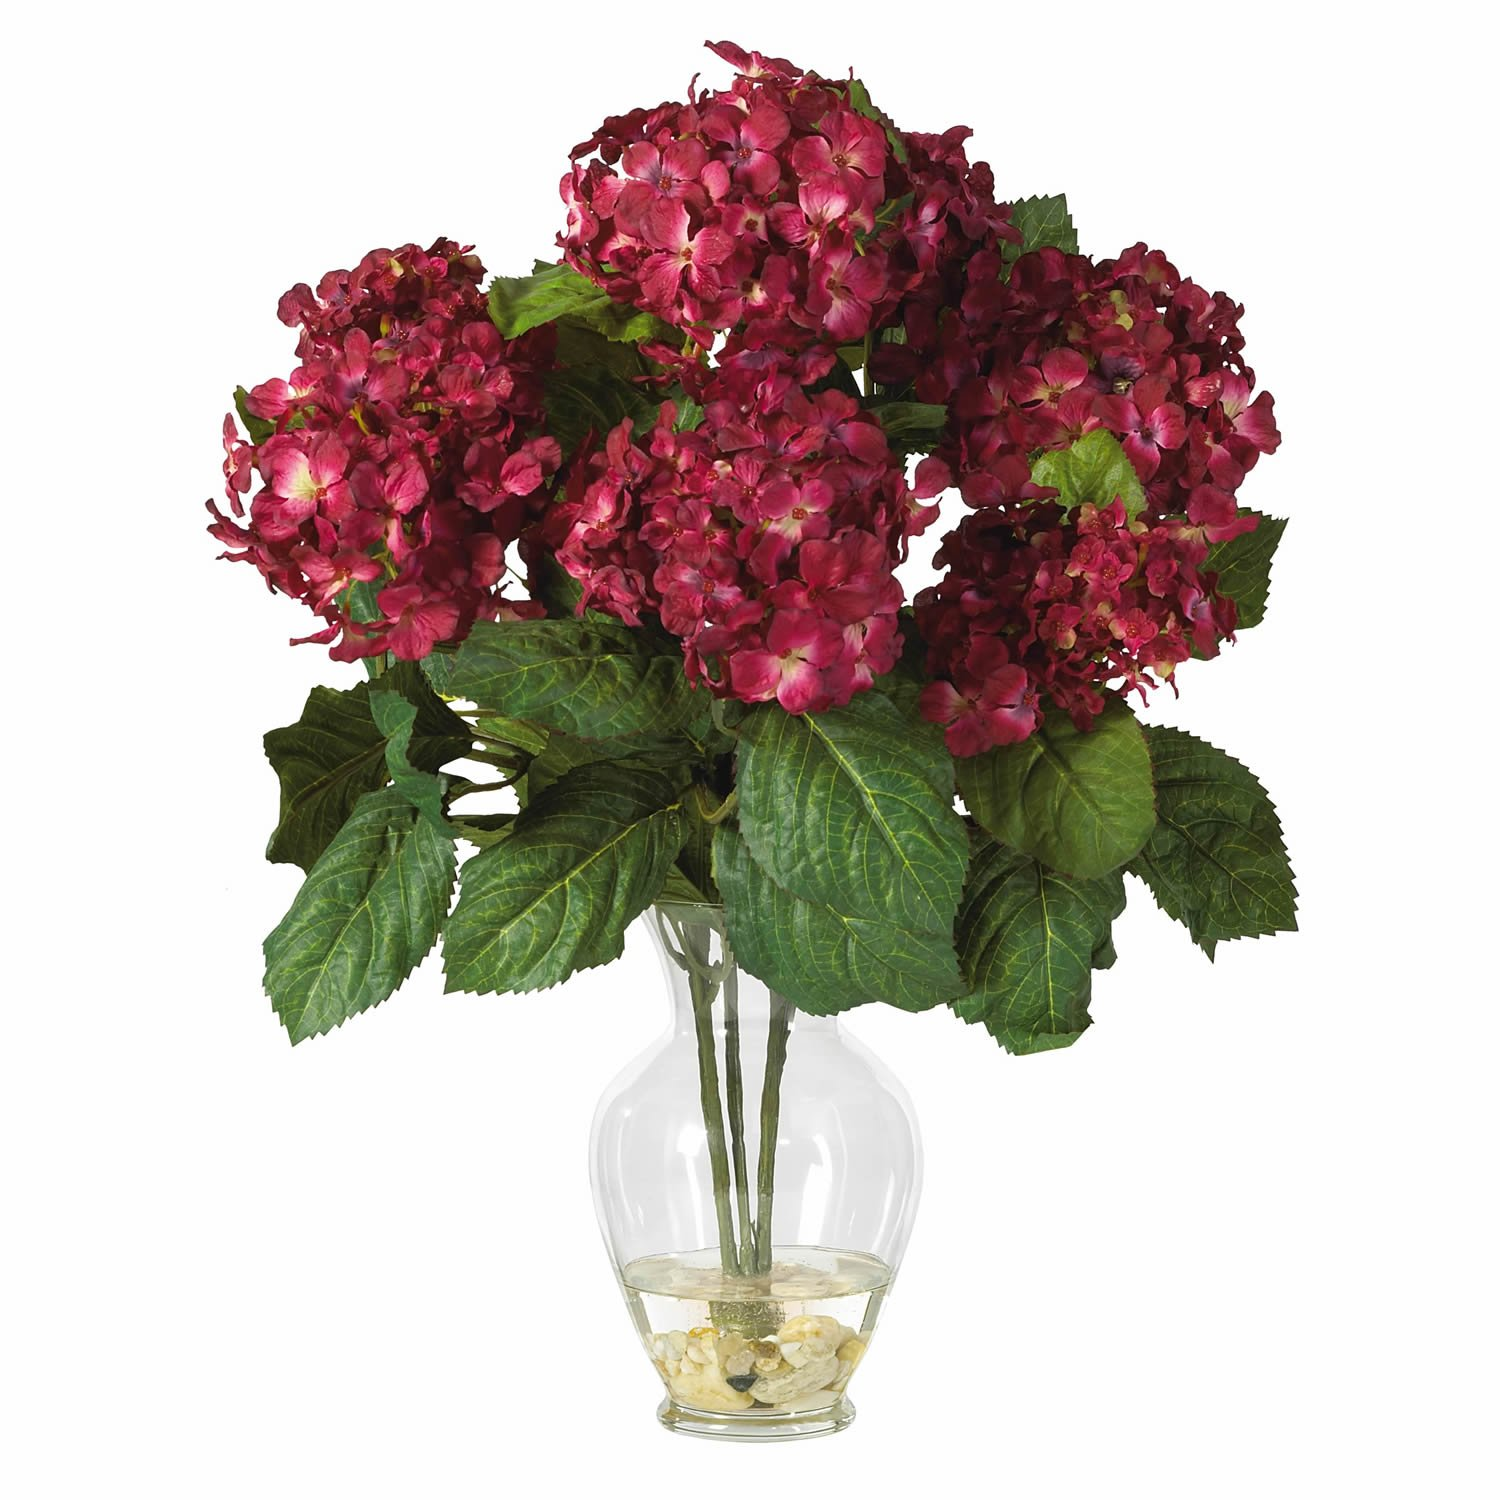 Hydrangea Liquid Illusion Silk Arrangement - Bugundy